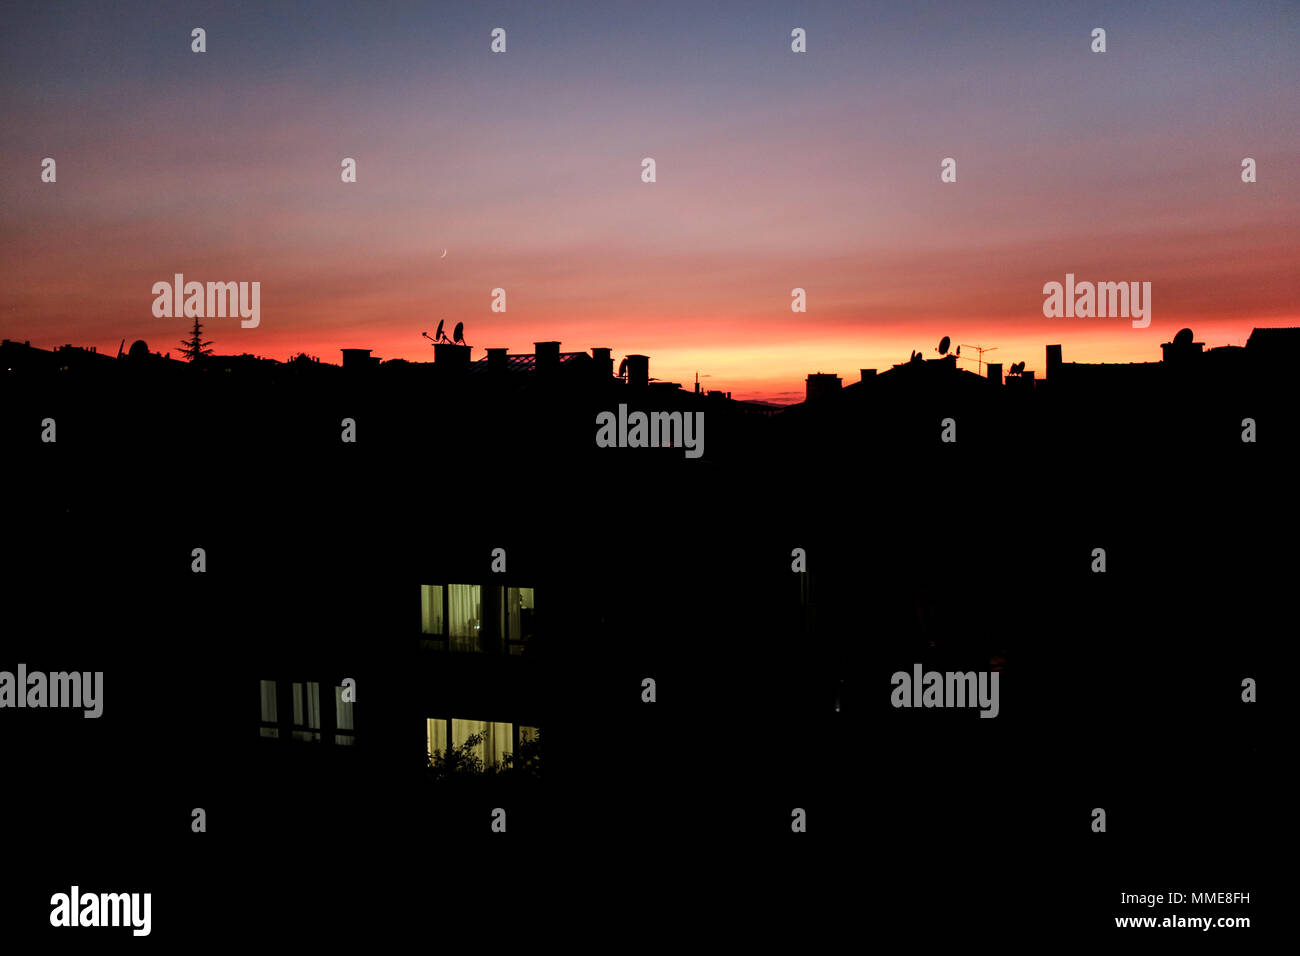 sunset skyscape city town silhouette - Stock Image